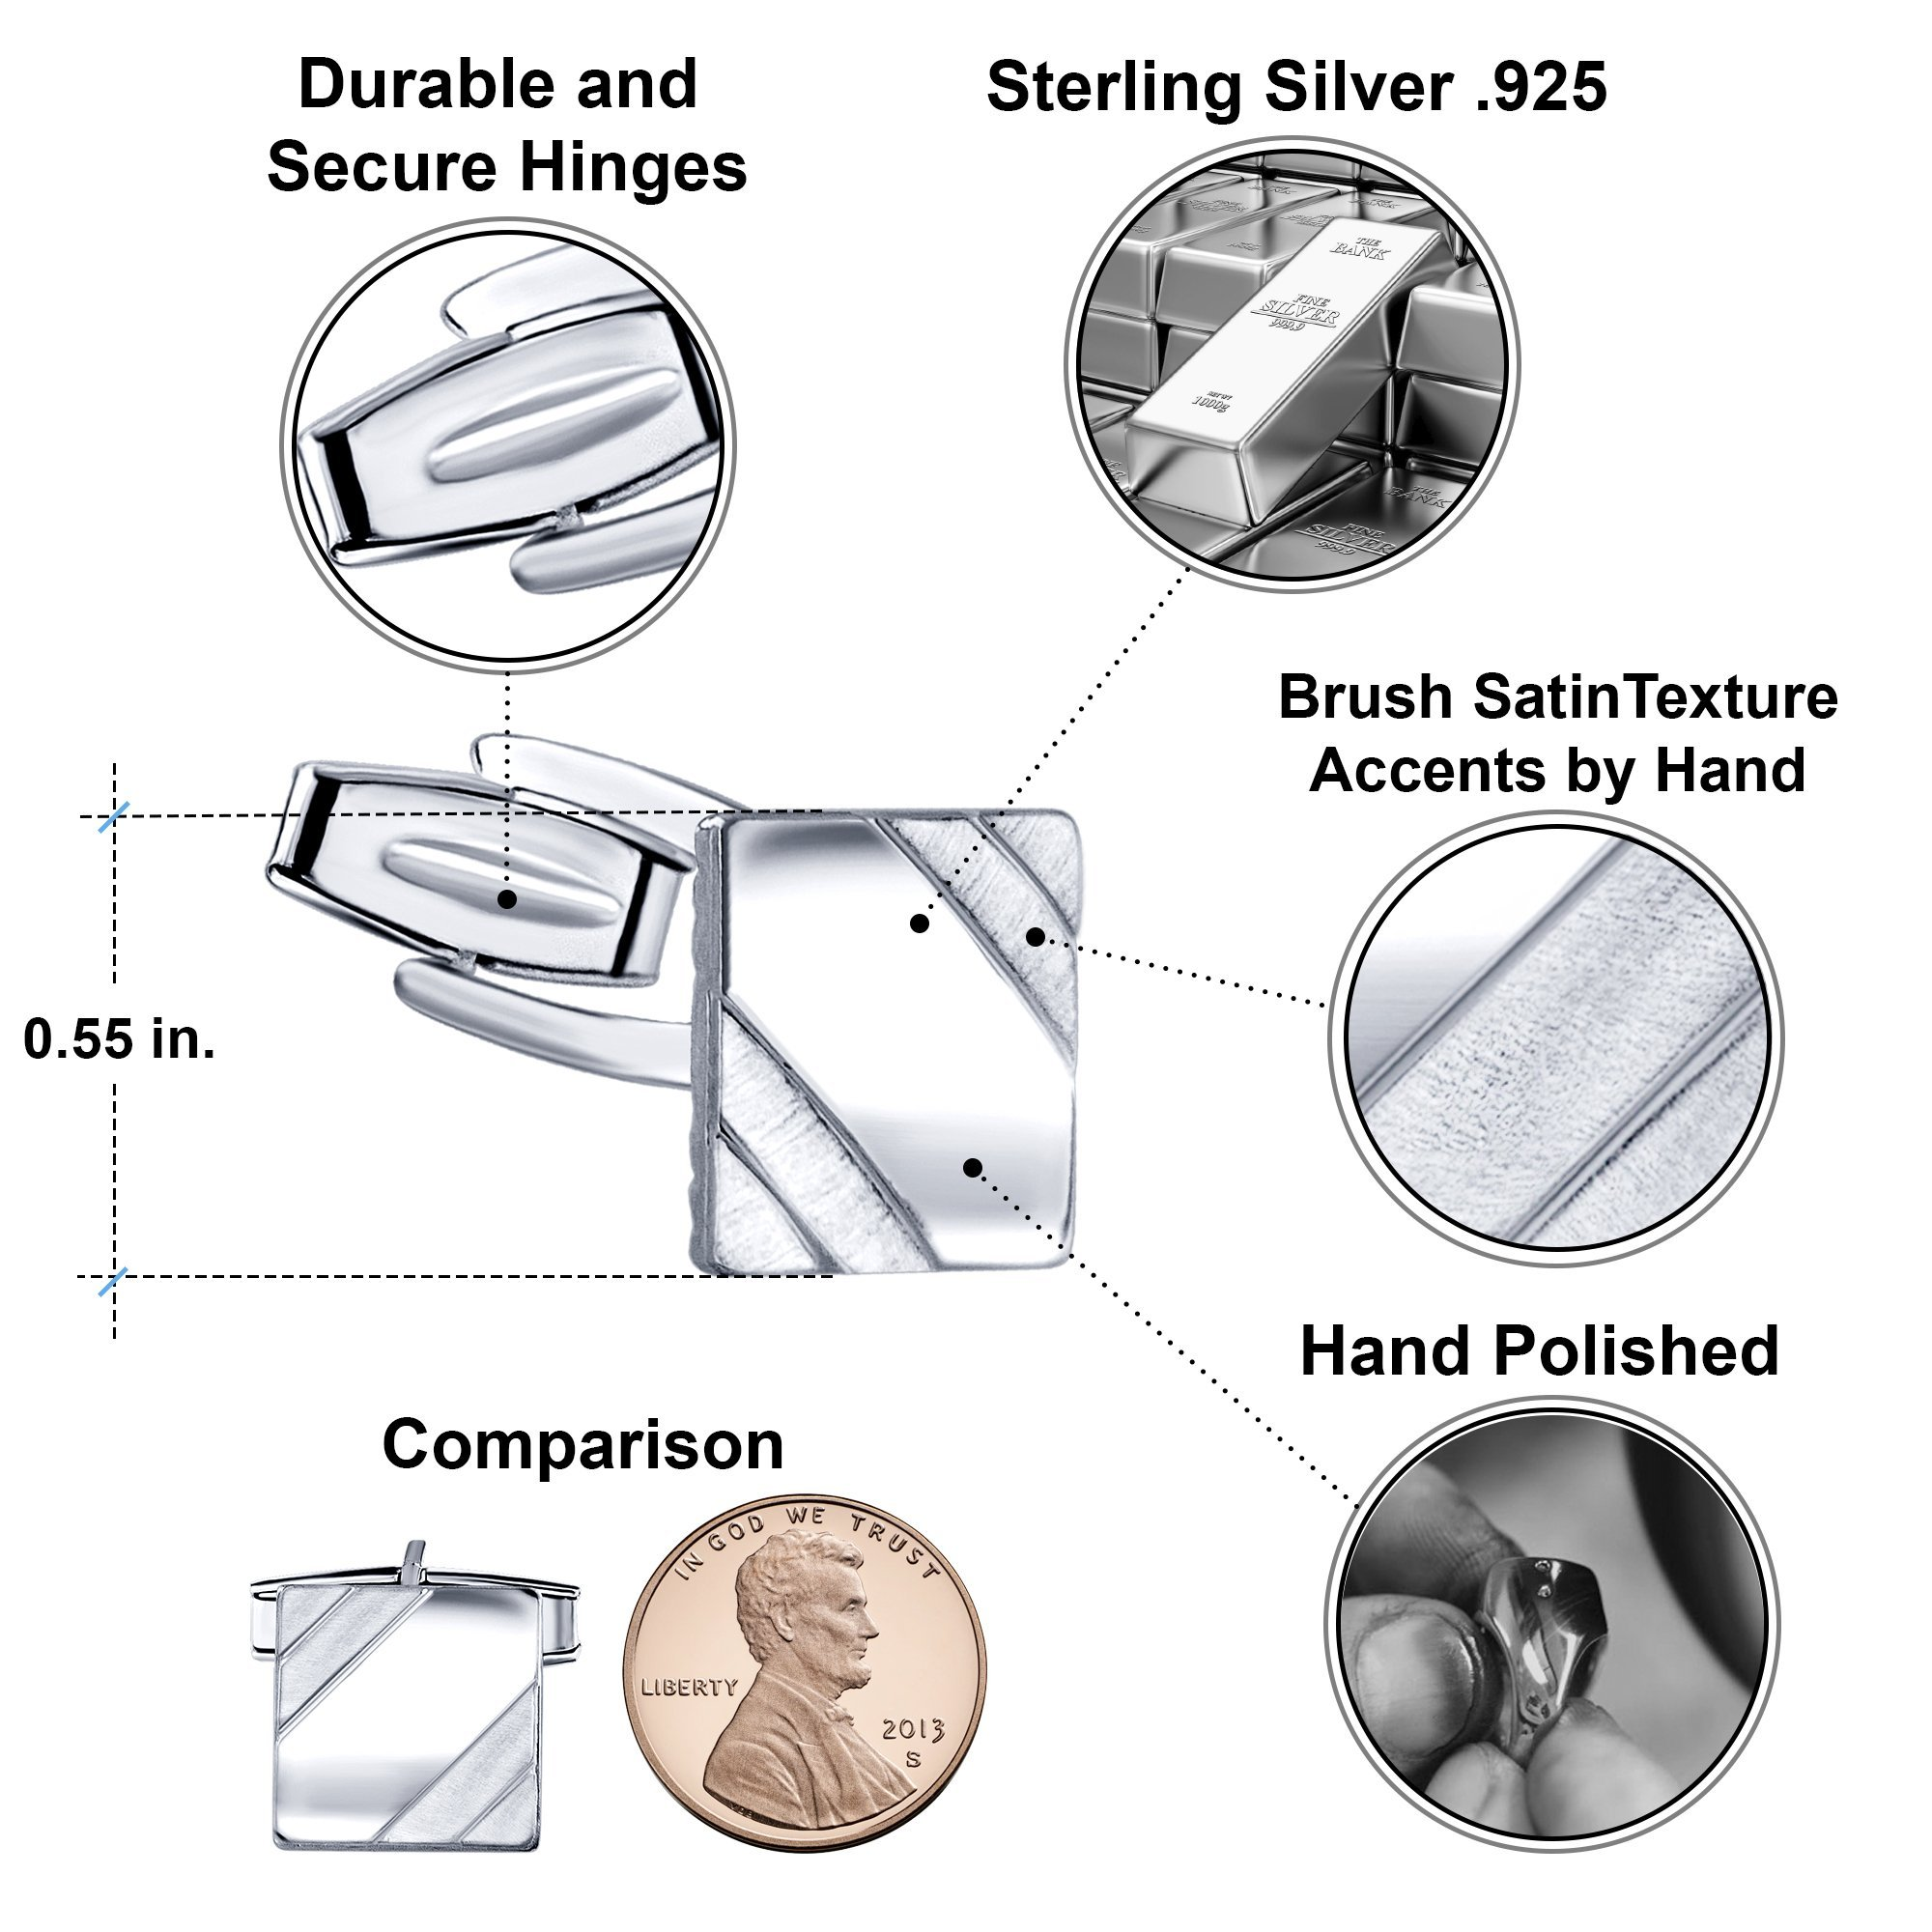 Men's Sterling Silver .925 Square Cufflinks with Satin Finish Accents in Two Corners, Engravable. Made In Italy. 14mm by Sterling Manufacturers (Image #3)